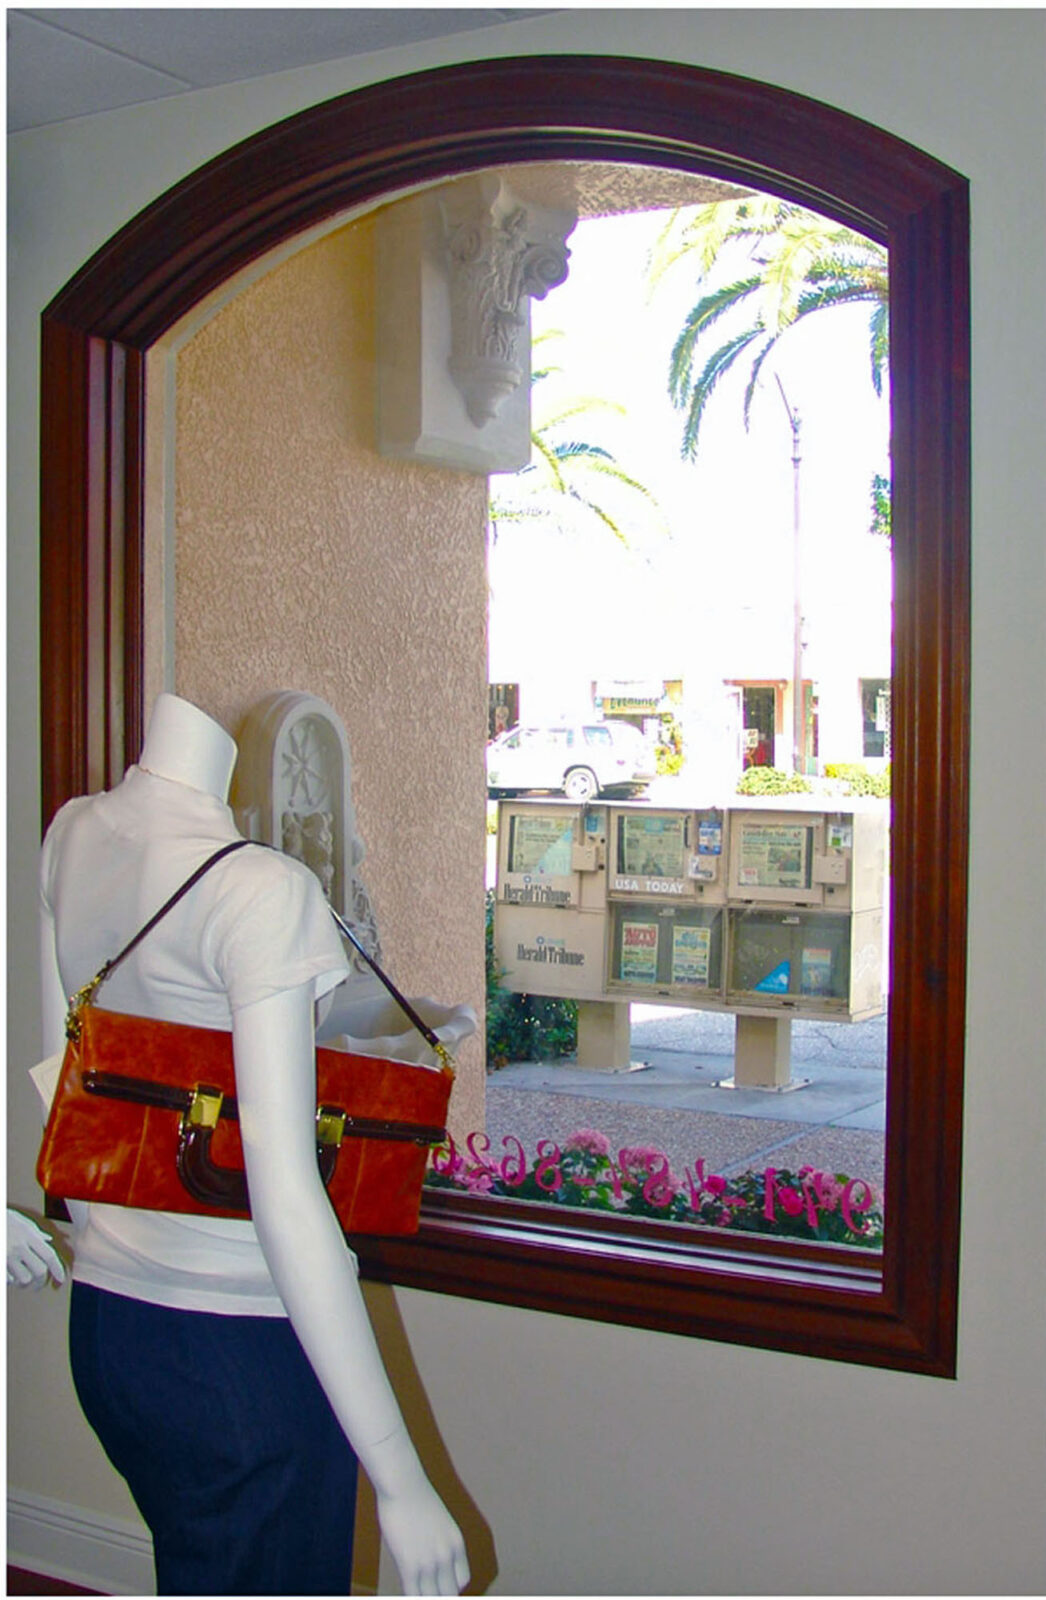 NAPLES FIXED STORE FRONT WINDOW